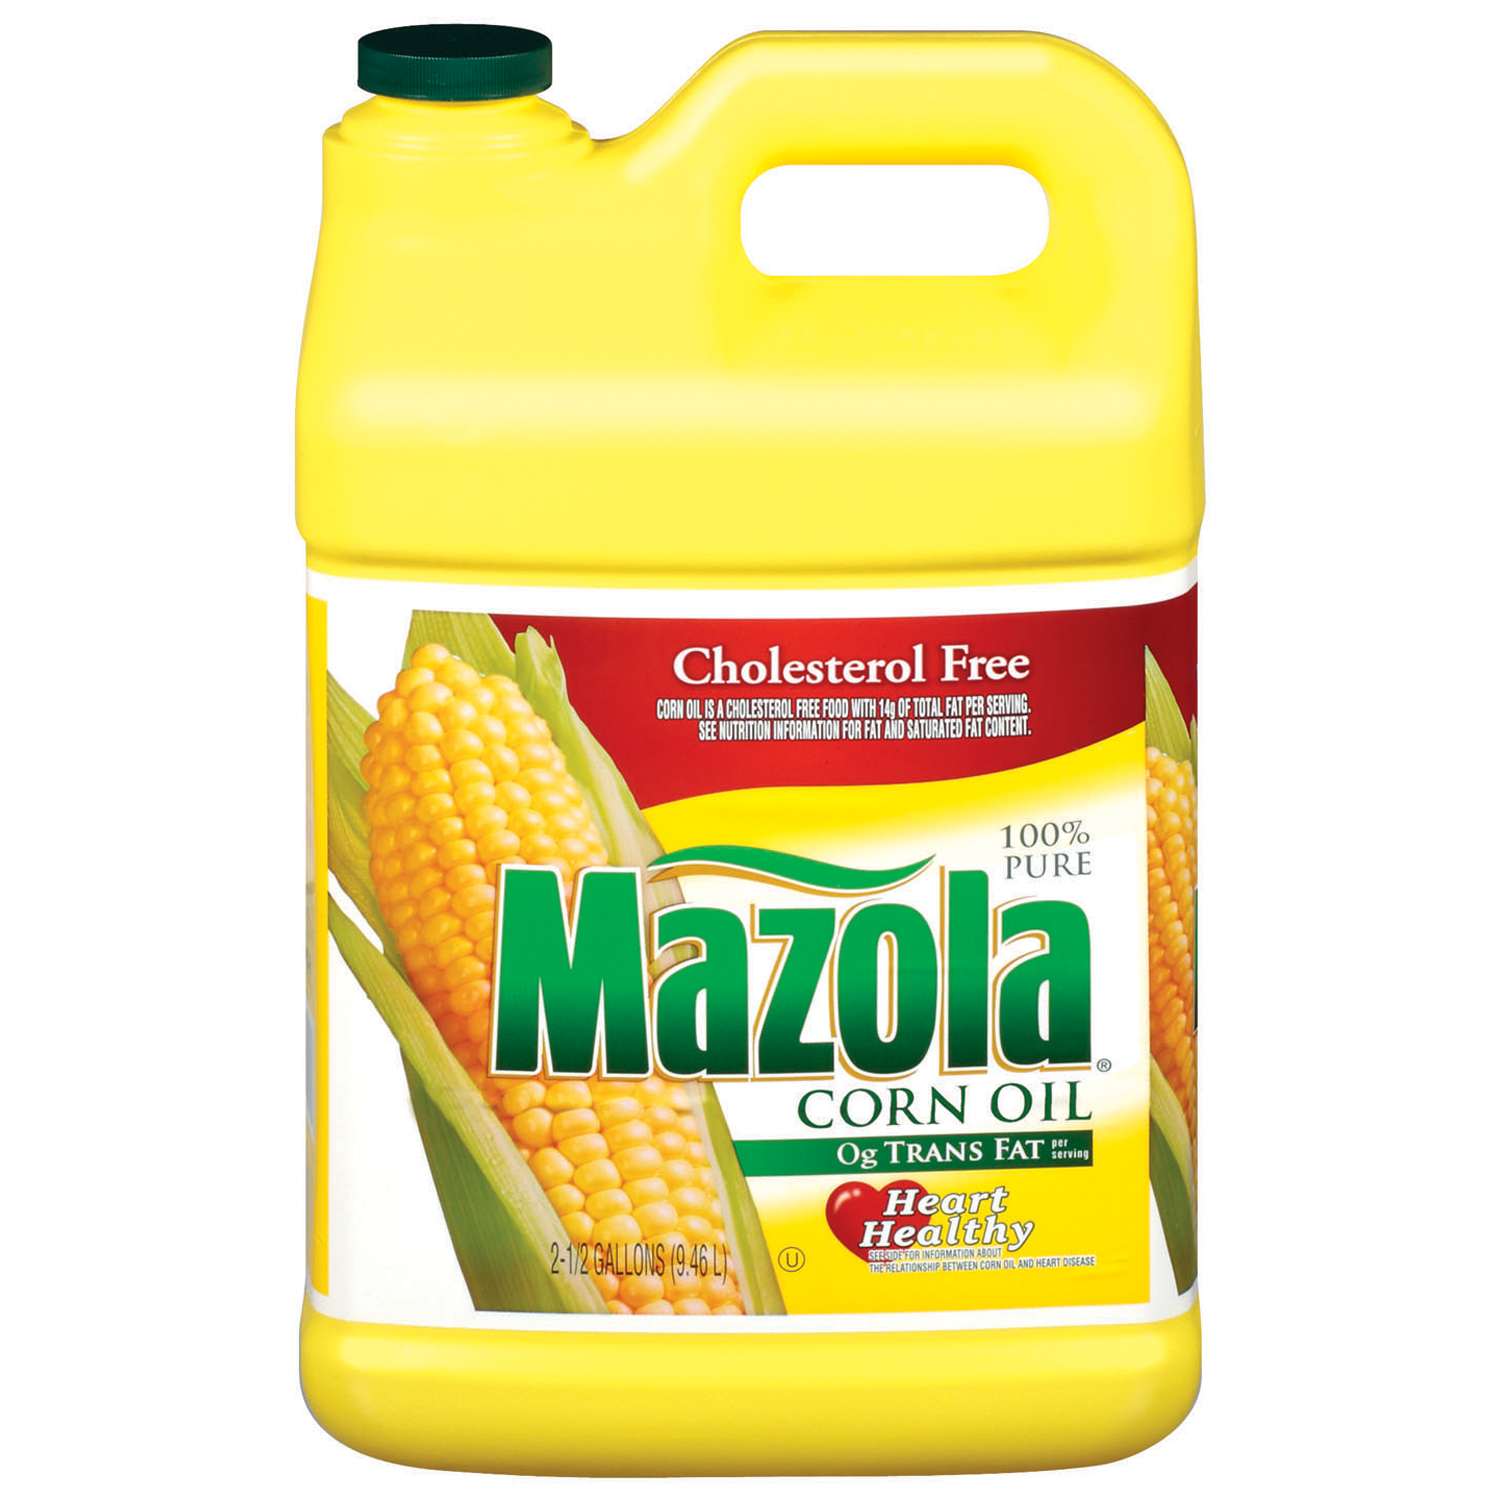 Mazola 100% Pure Corn Oil, 2.5 gal